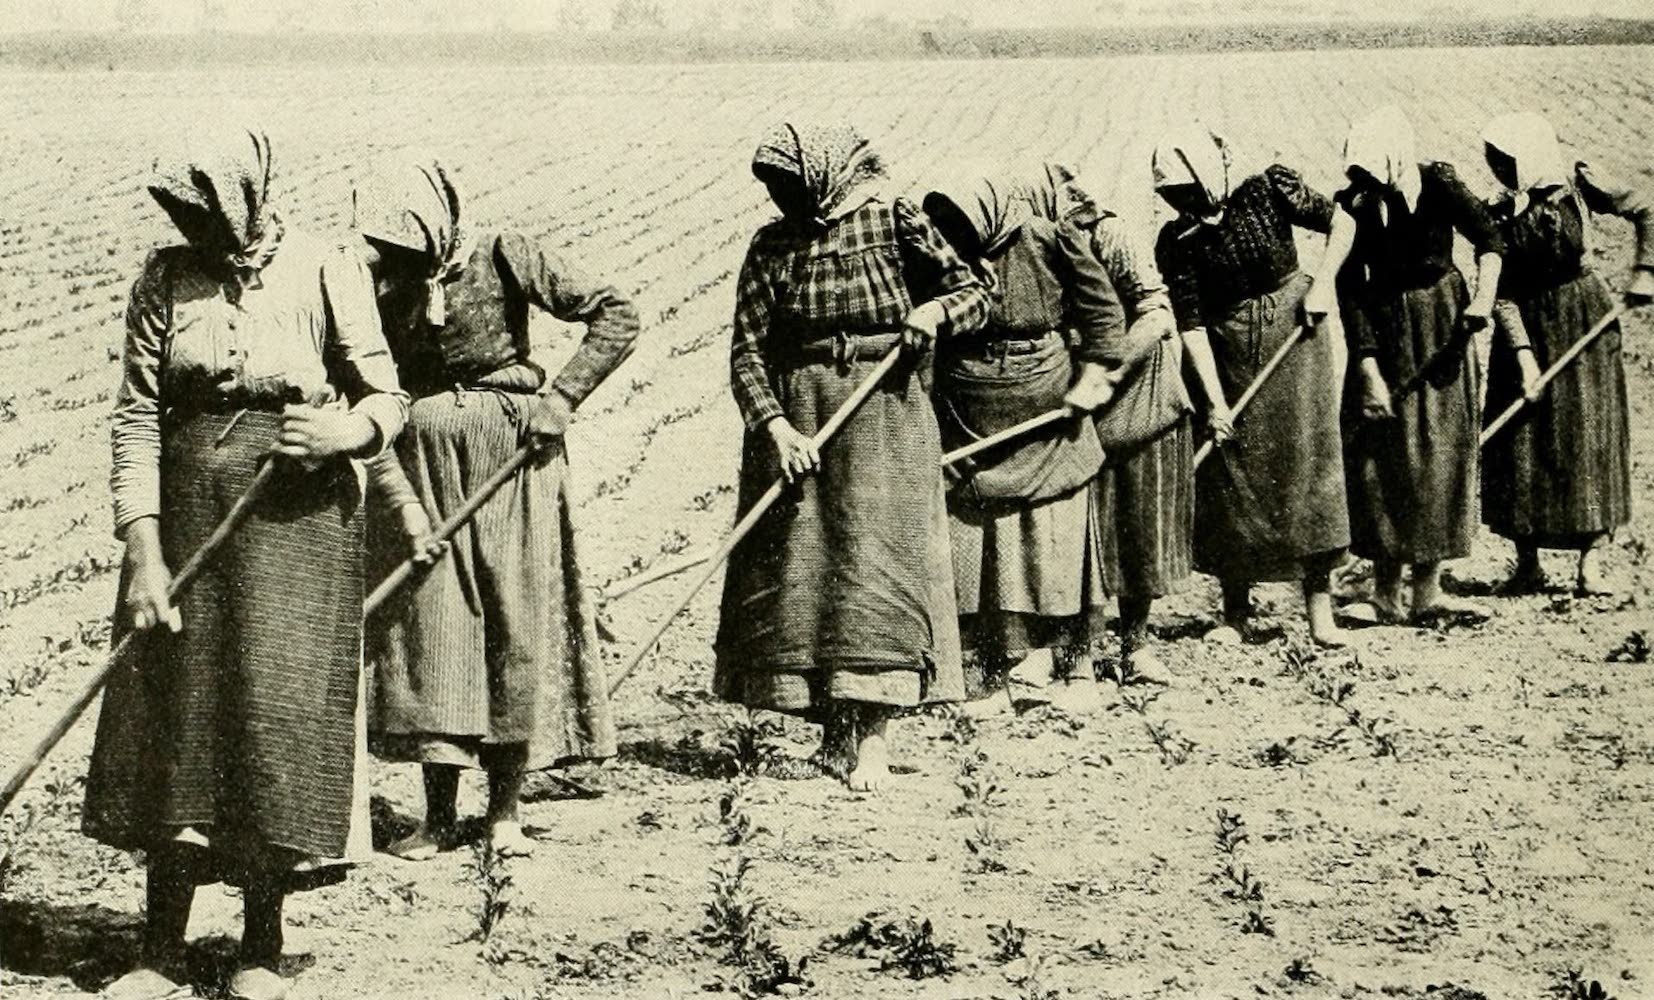 Laird & Lee's World's War Glimpses - Beet Sugar Workers, in Germany (1914)